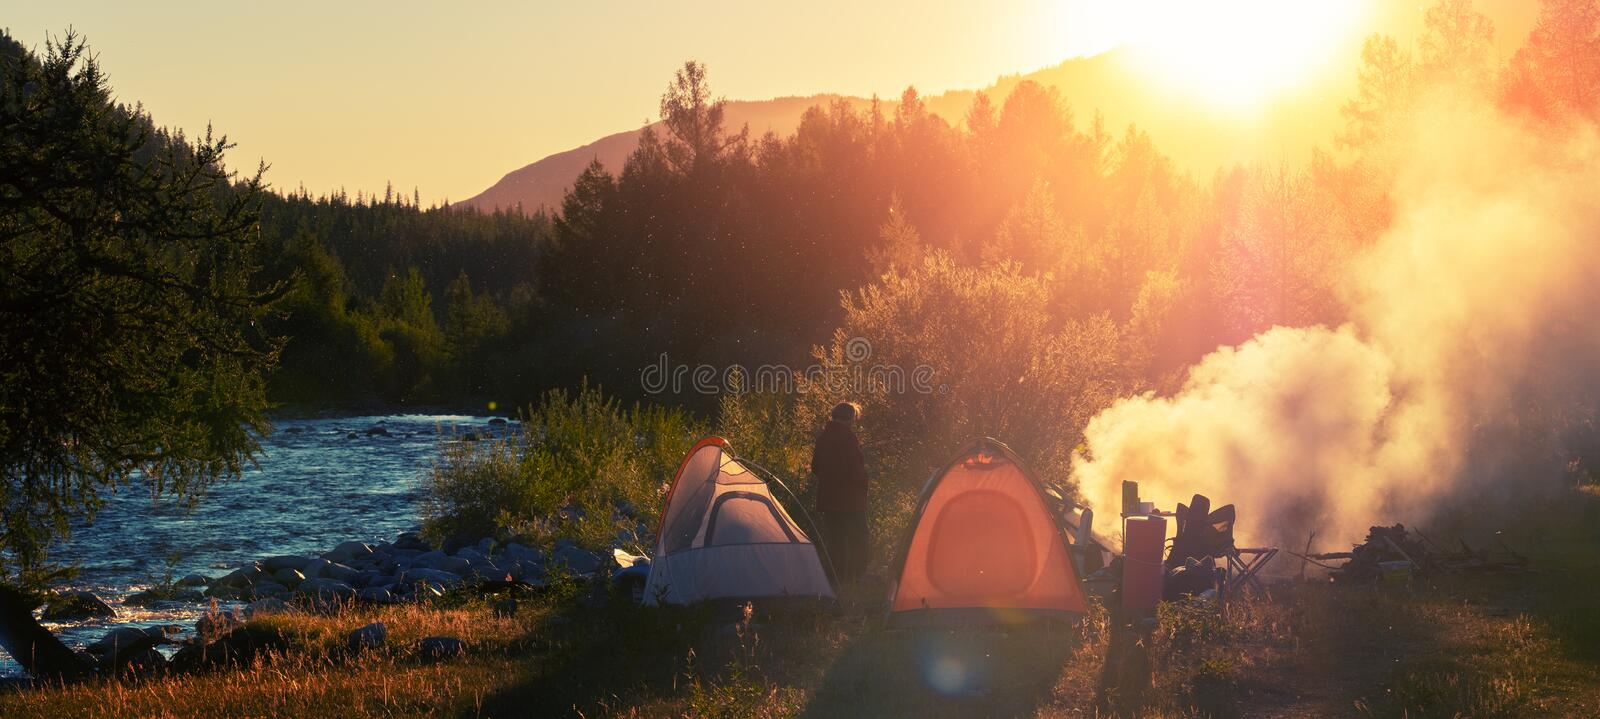 Panorama of the camp in the wild area. Hikers set the tents near the river and make fire at sunset royalty free stock photo